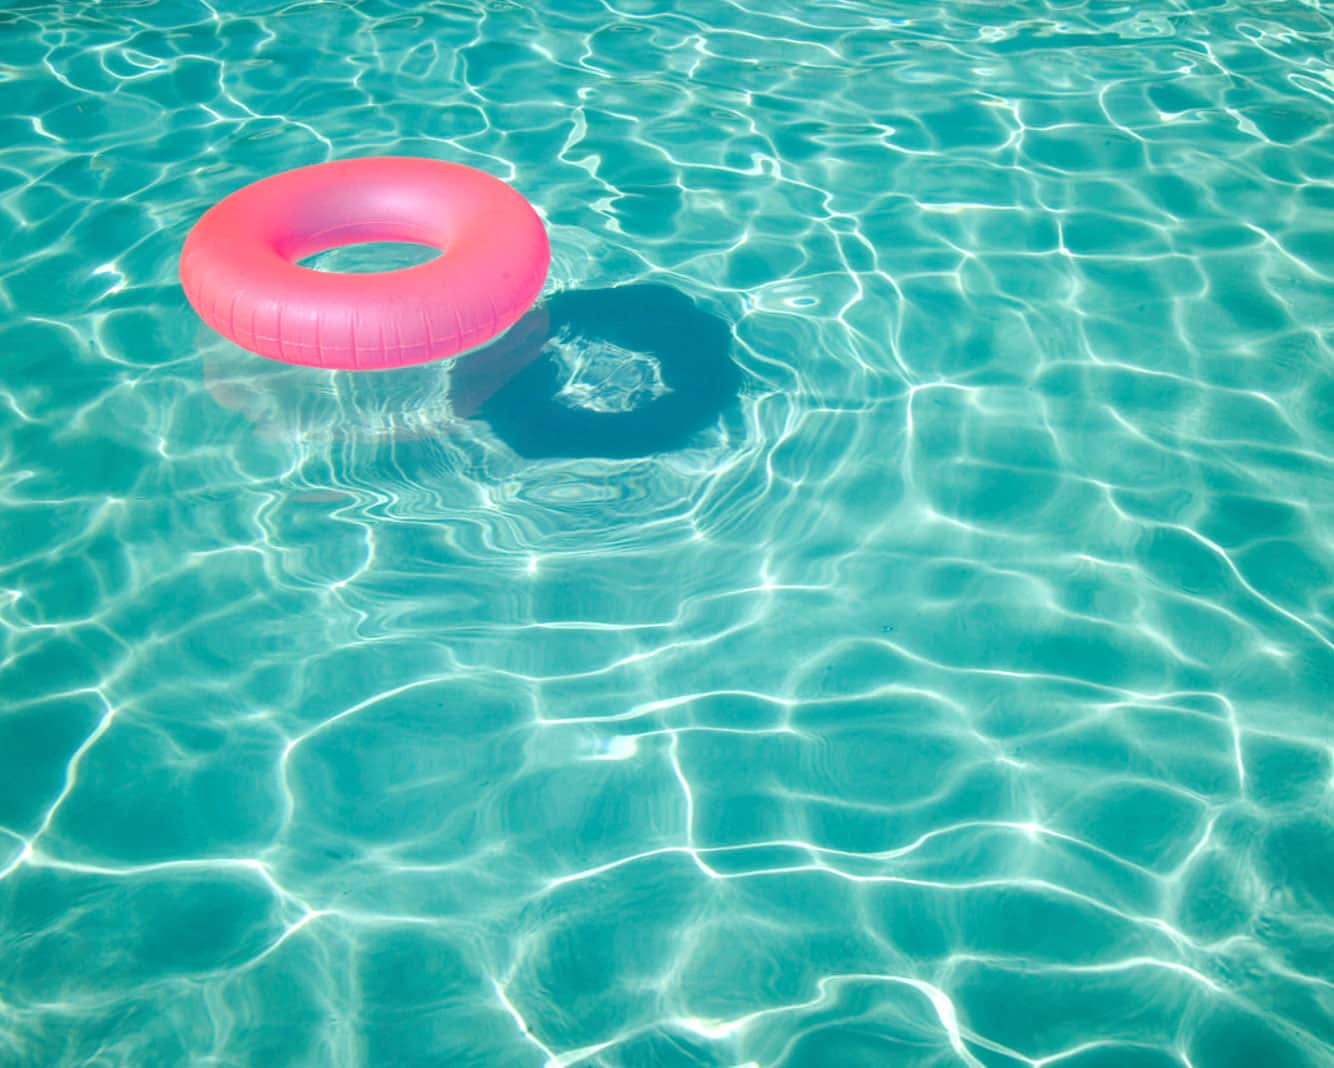 pool and a pink floater